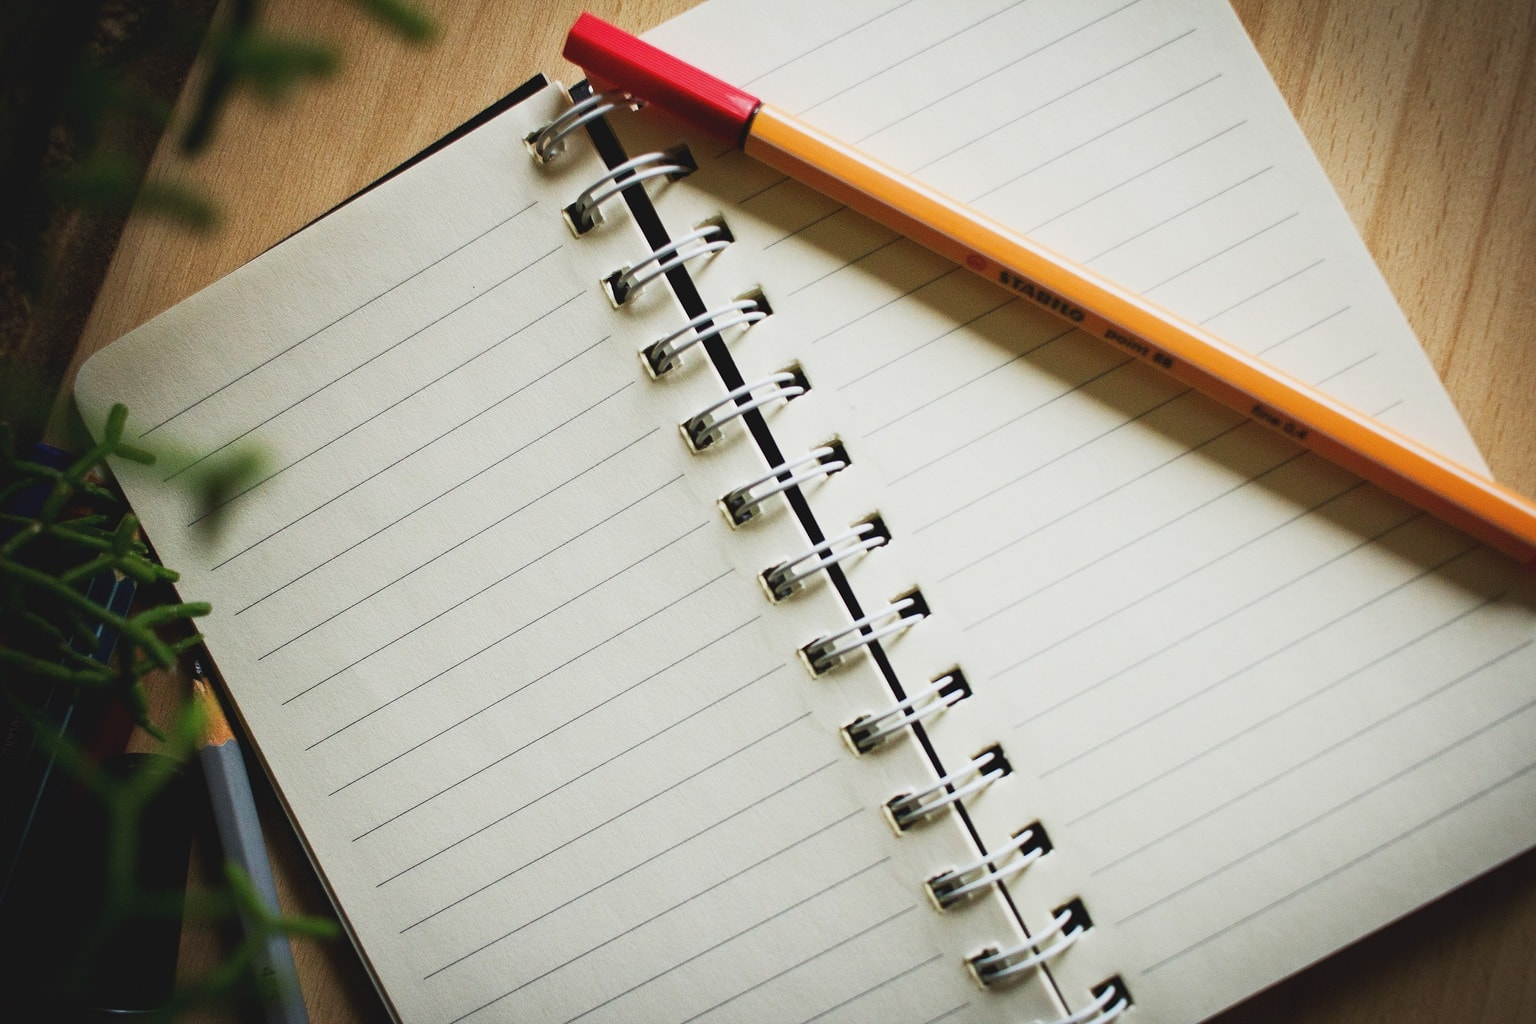 The first step to getting those ideas down is to open your notebook and get a writing utensil.